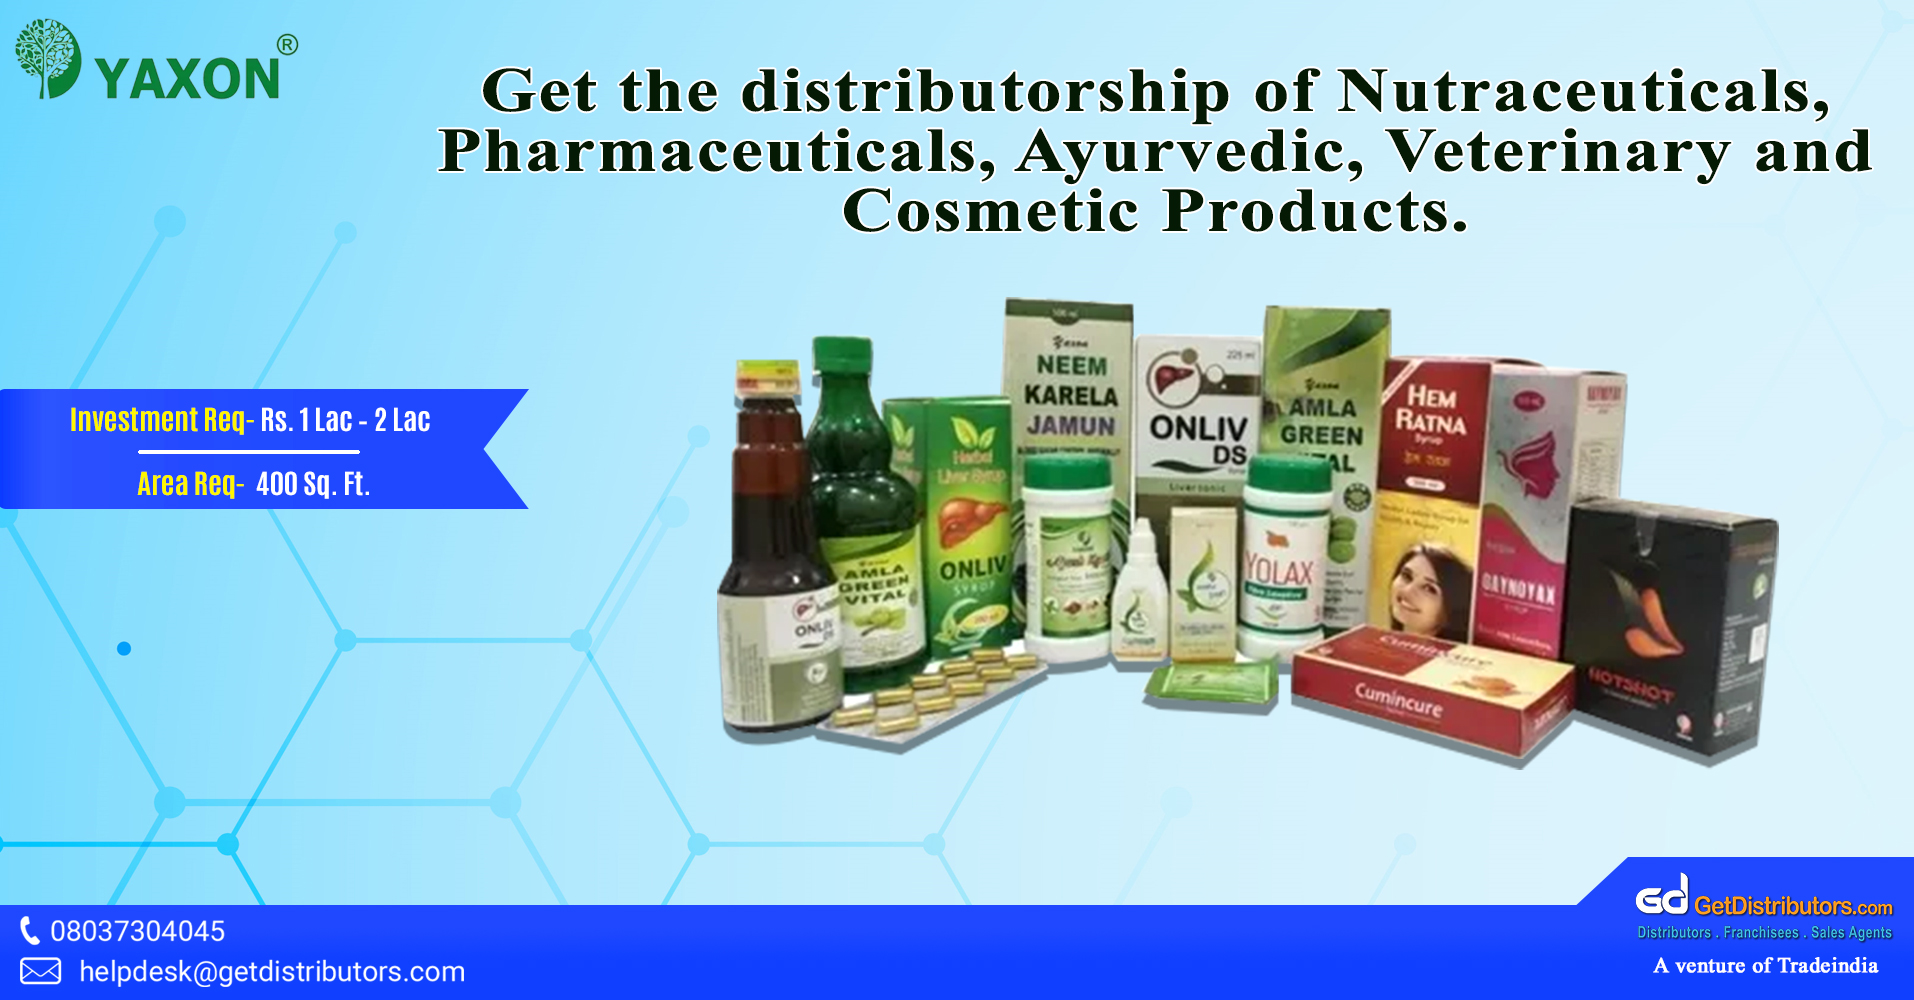 Take the distributorship of nutraceuticals, pharmaceuticals, ayurvedic, veterinary, and cosmetic products